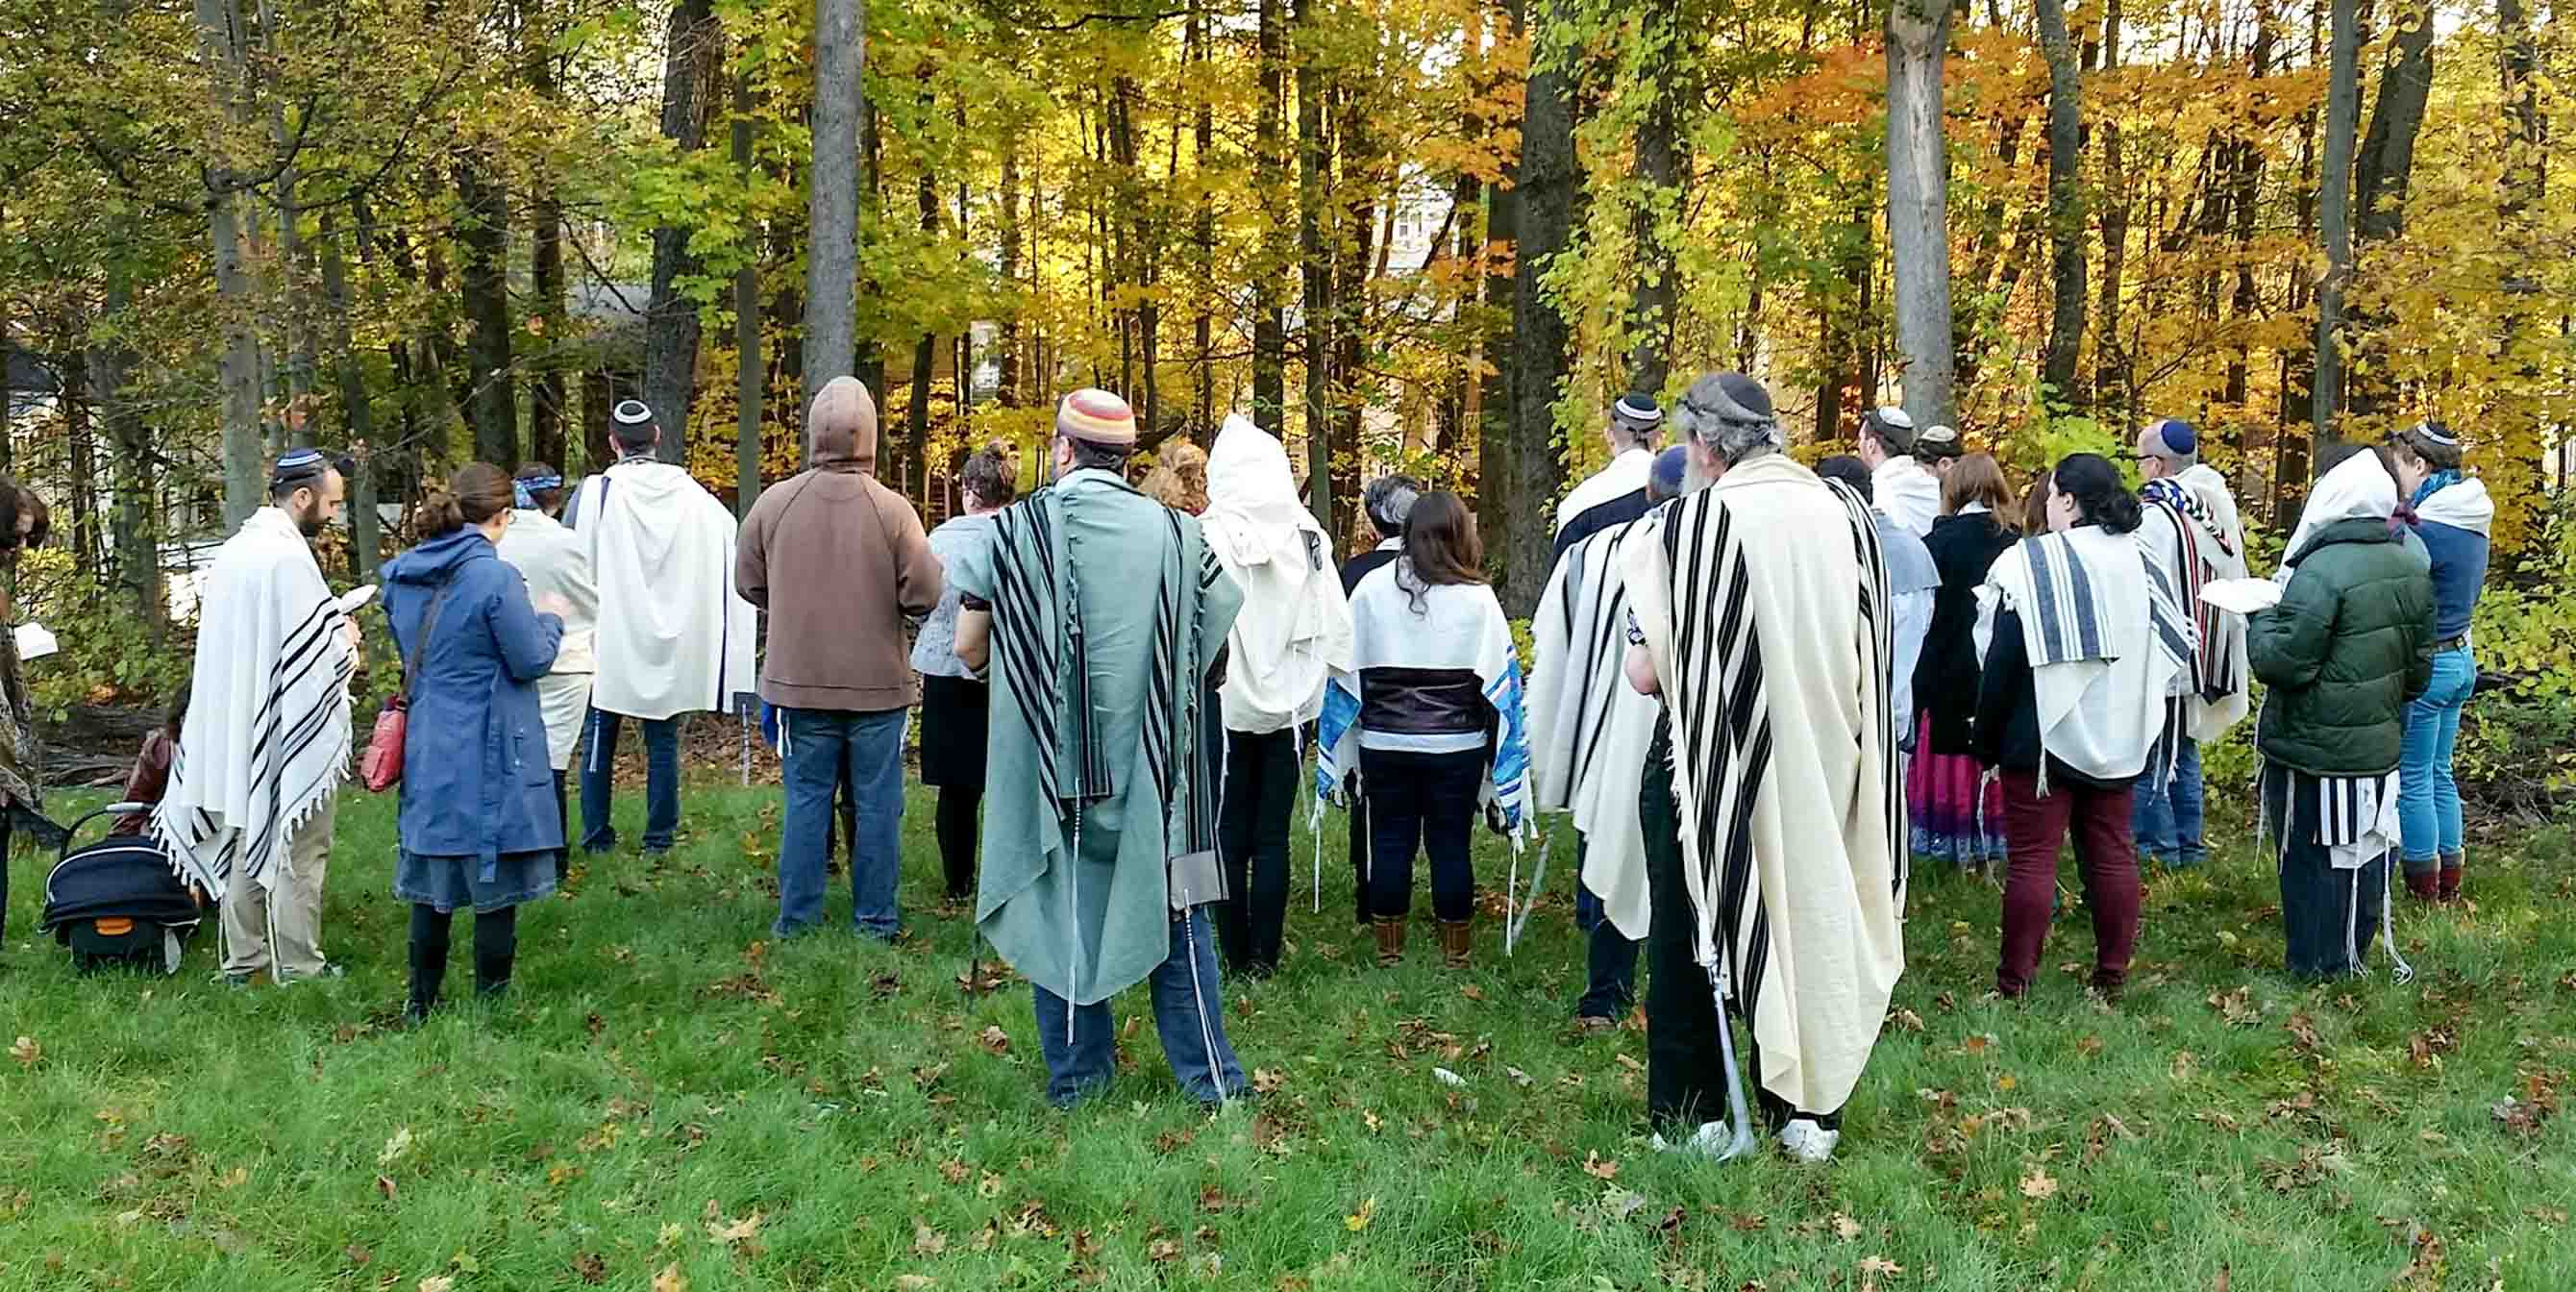 prayer in the woods